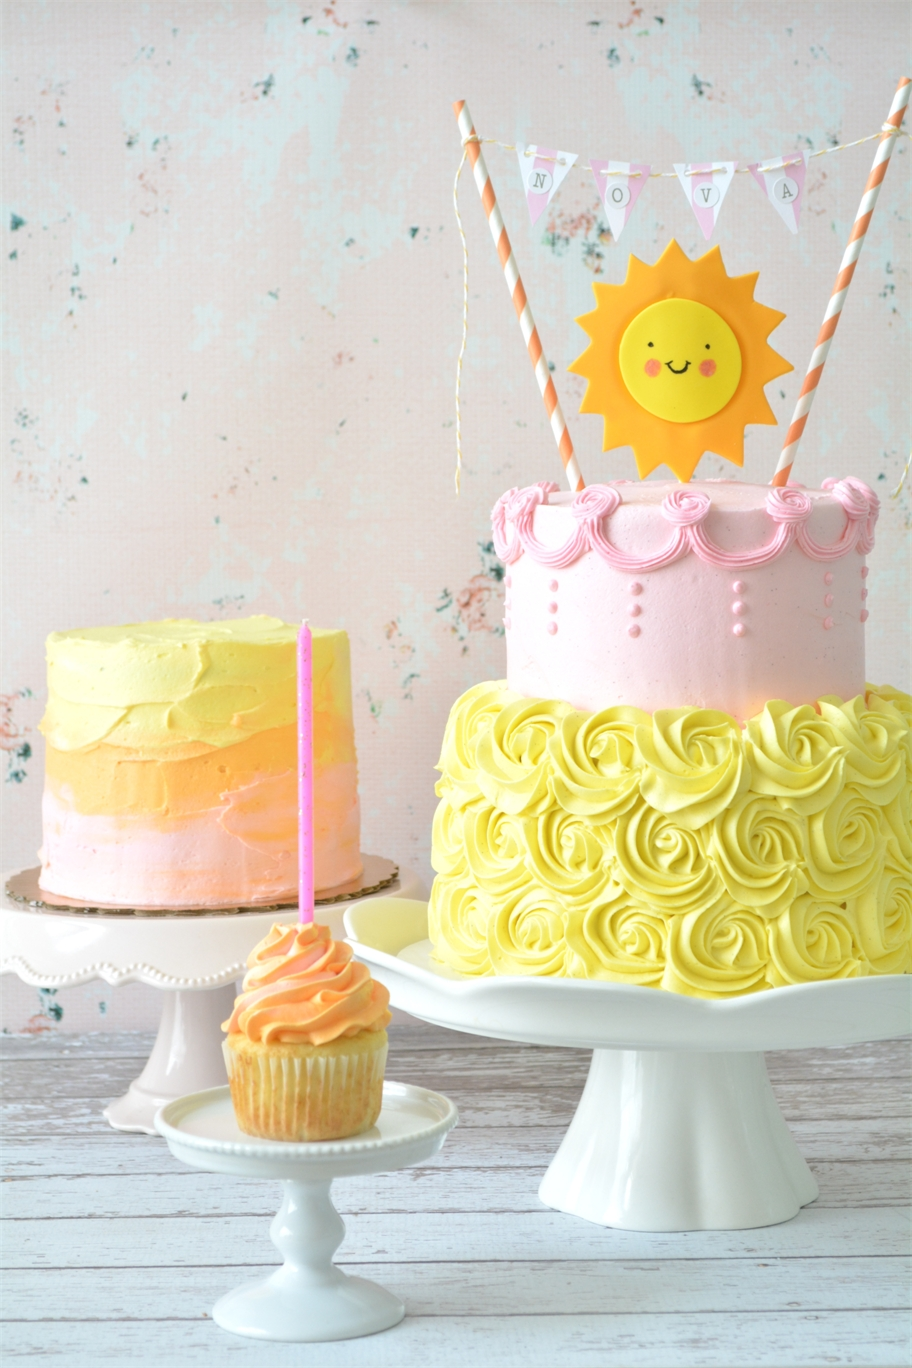 Curly Girl Kitchen: Sunshine Birthday Cakes